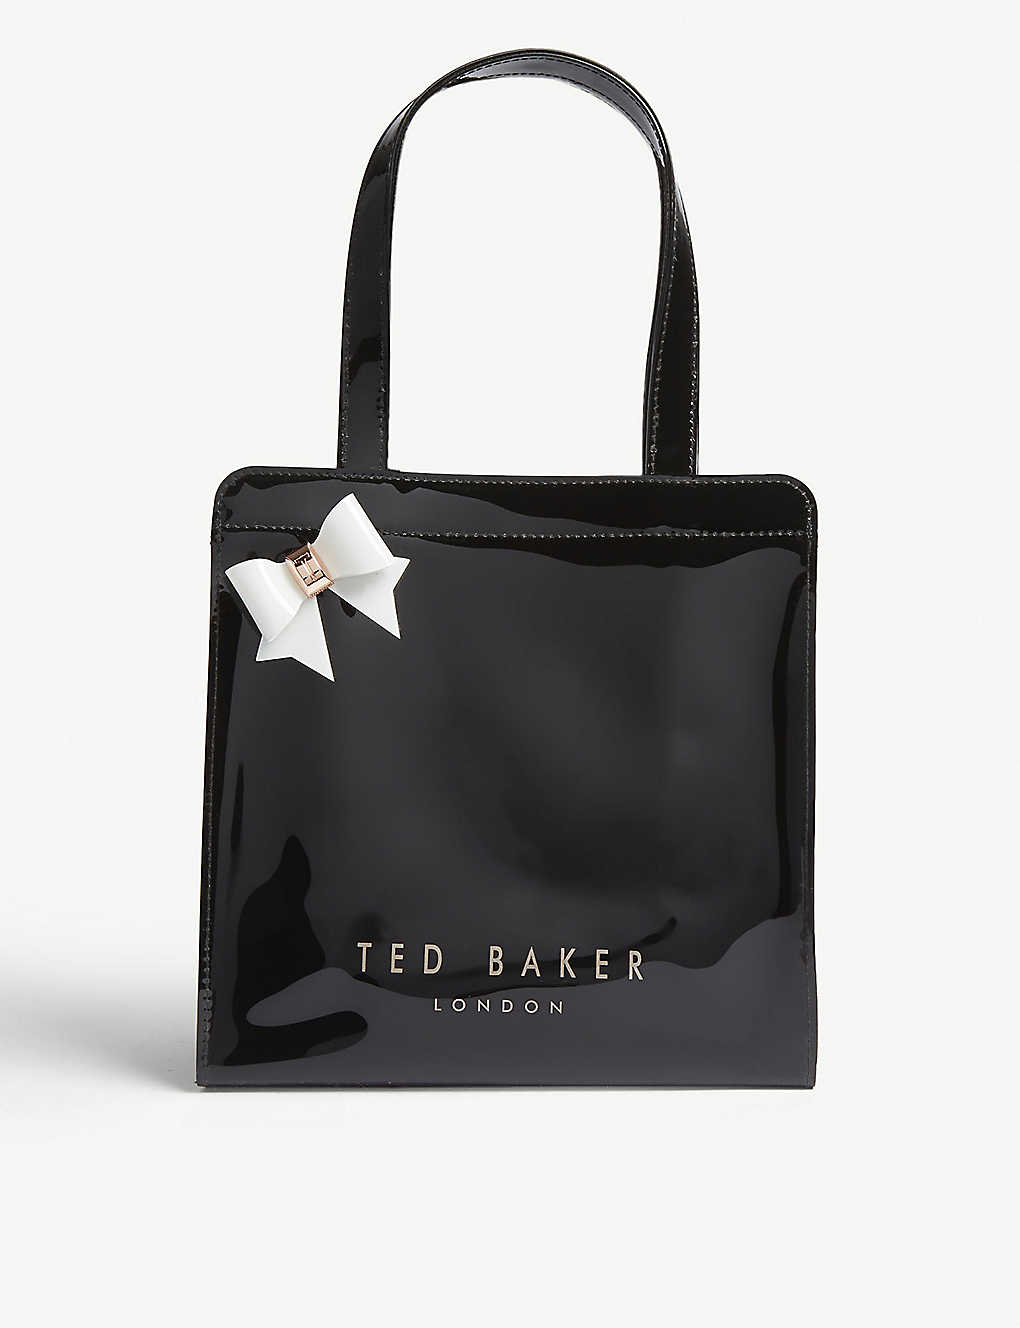 38cb4a1eb0cb TED BAKER - Small bow icon bag